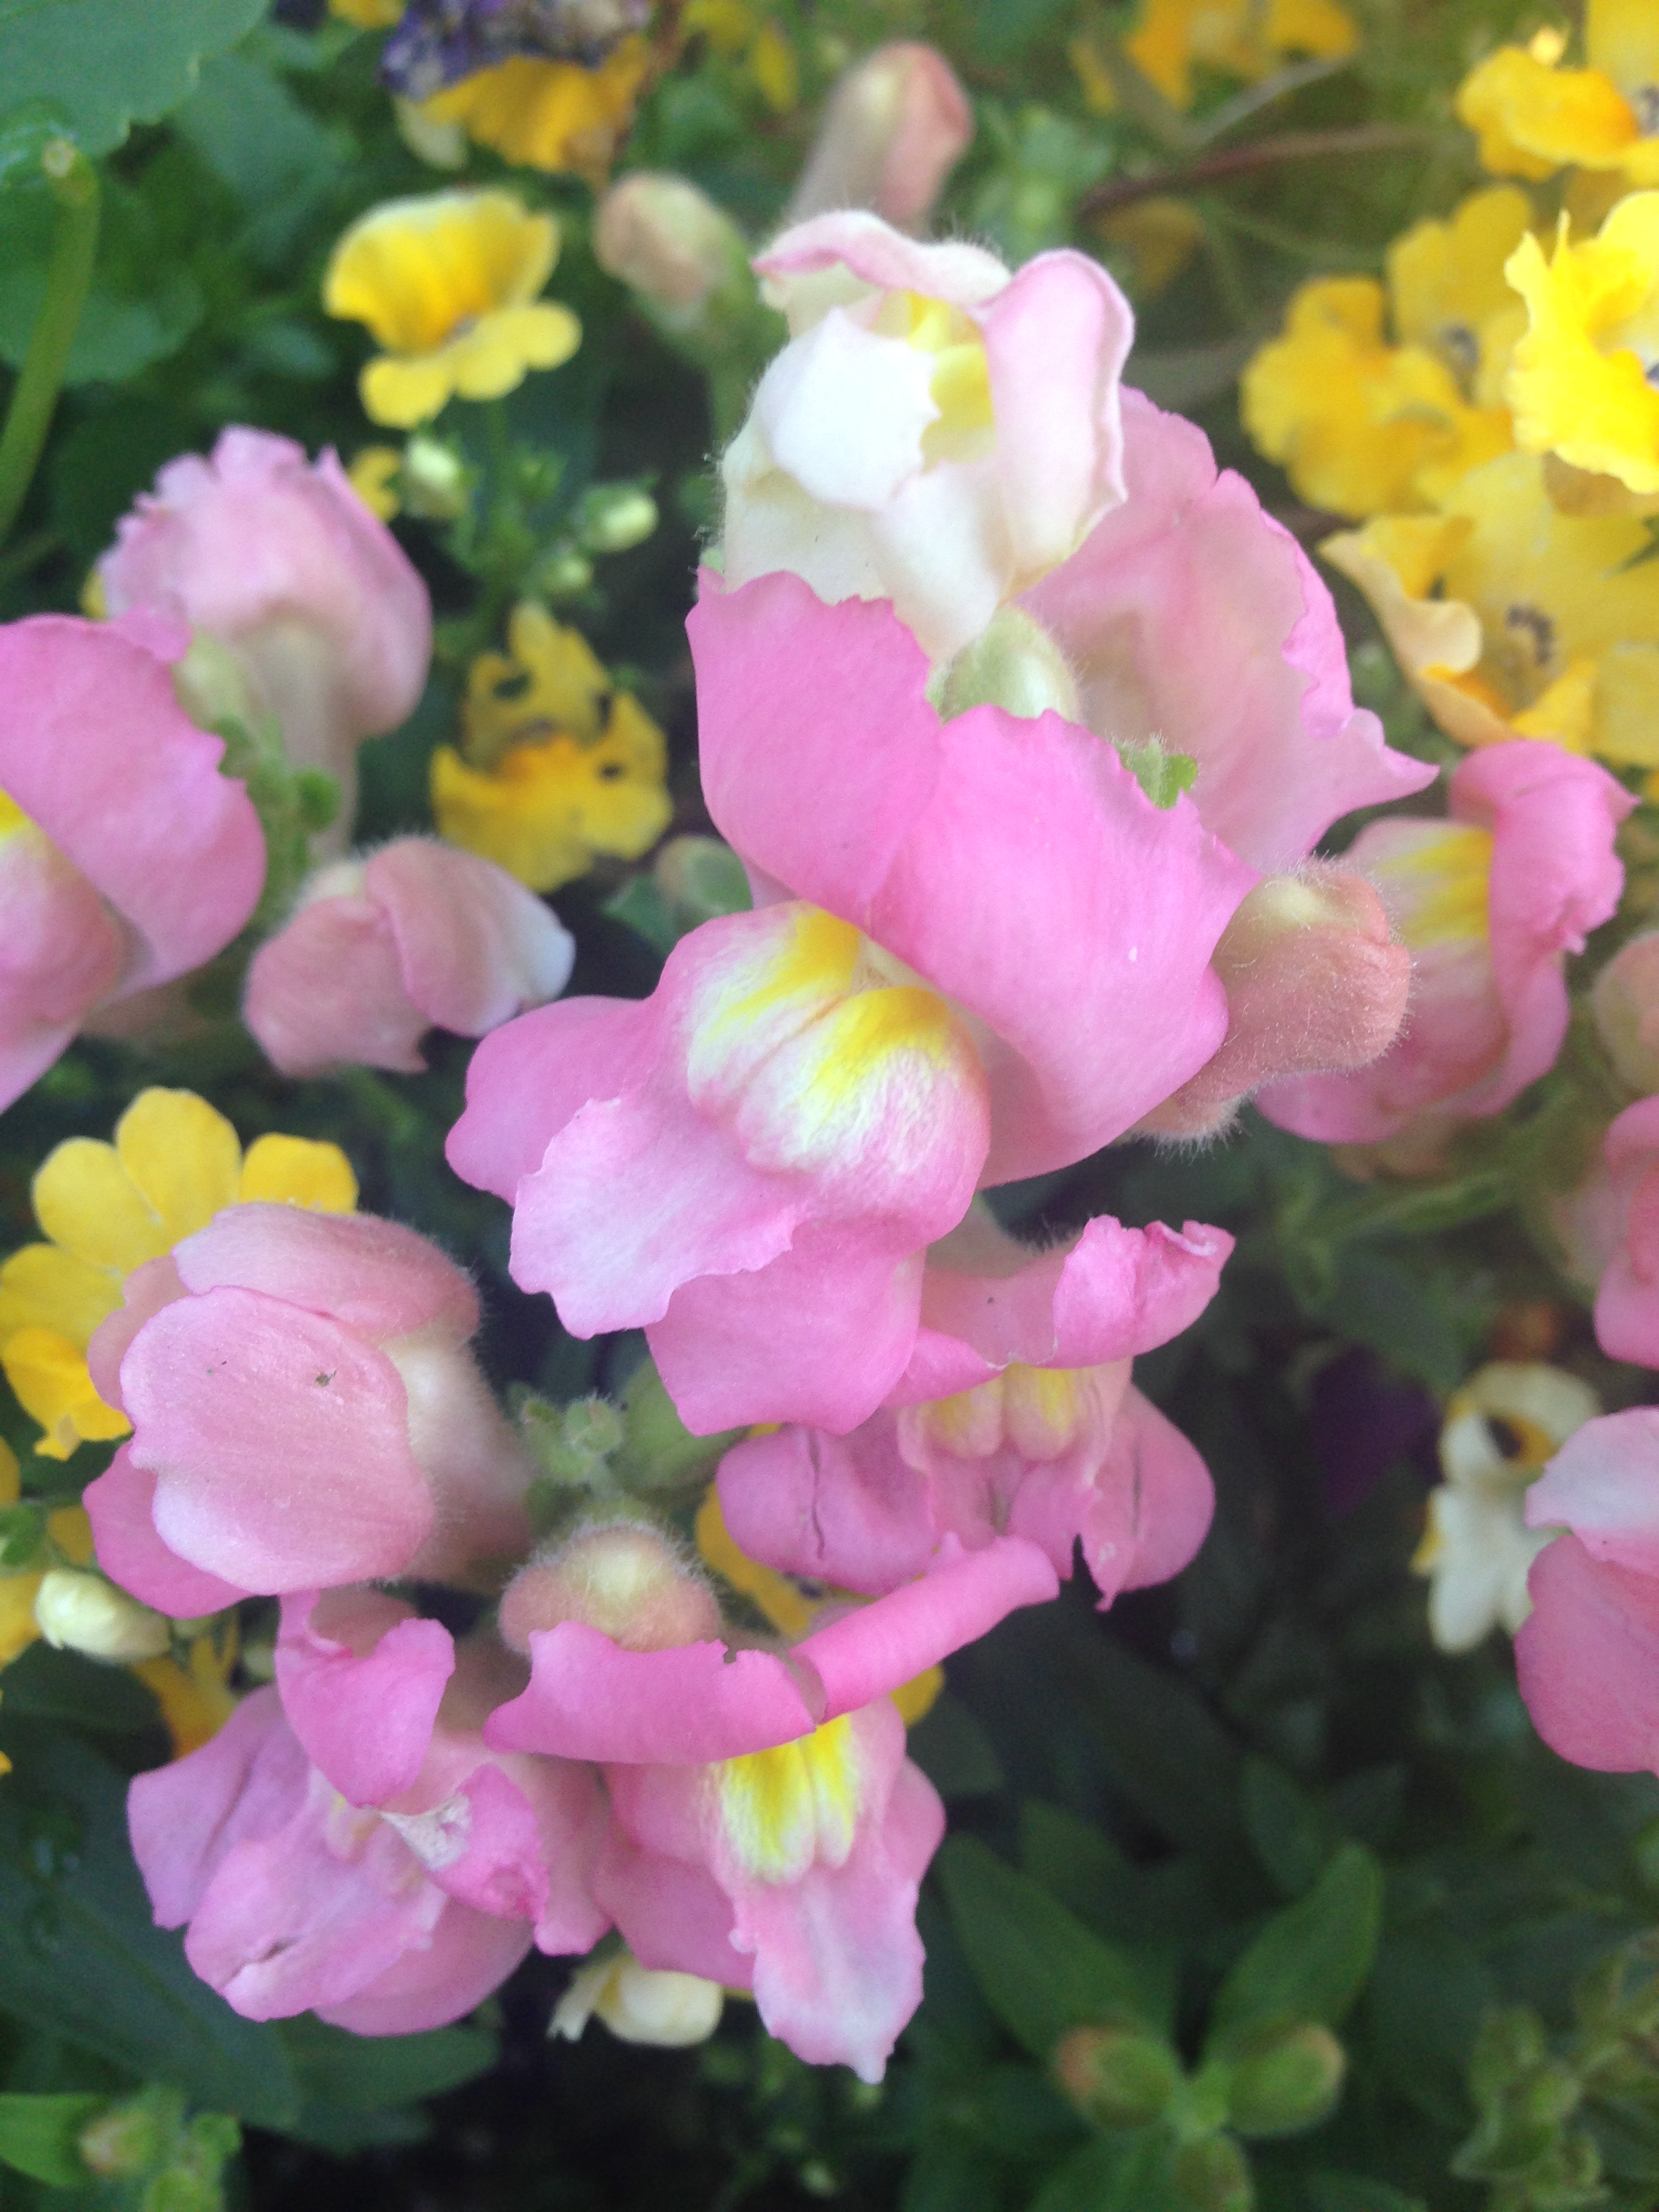 Snapdragon (photo by Maria Gulley)